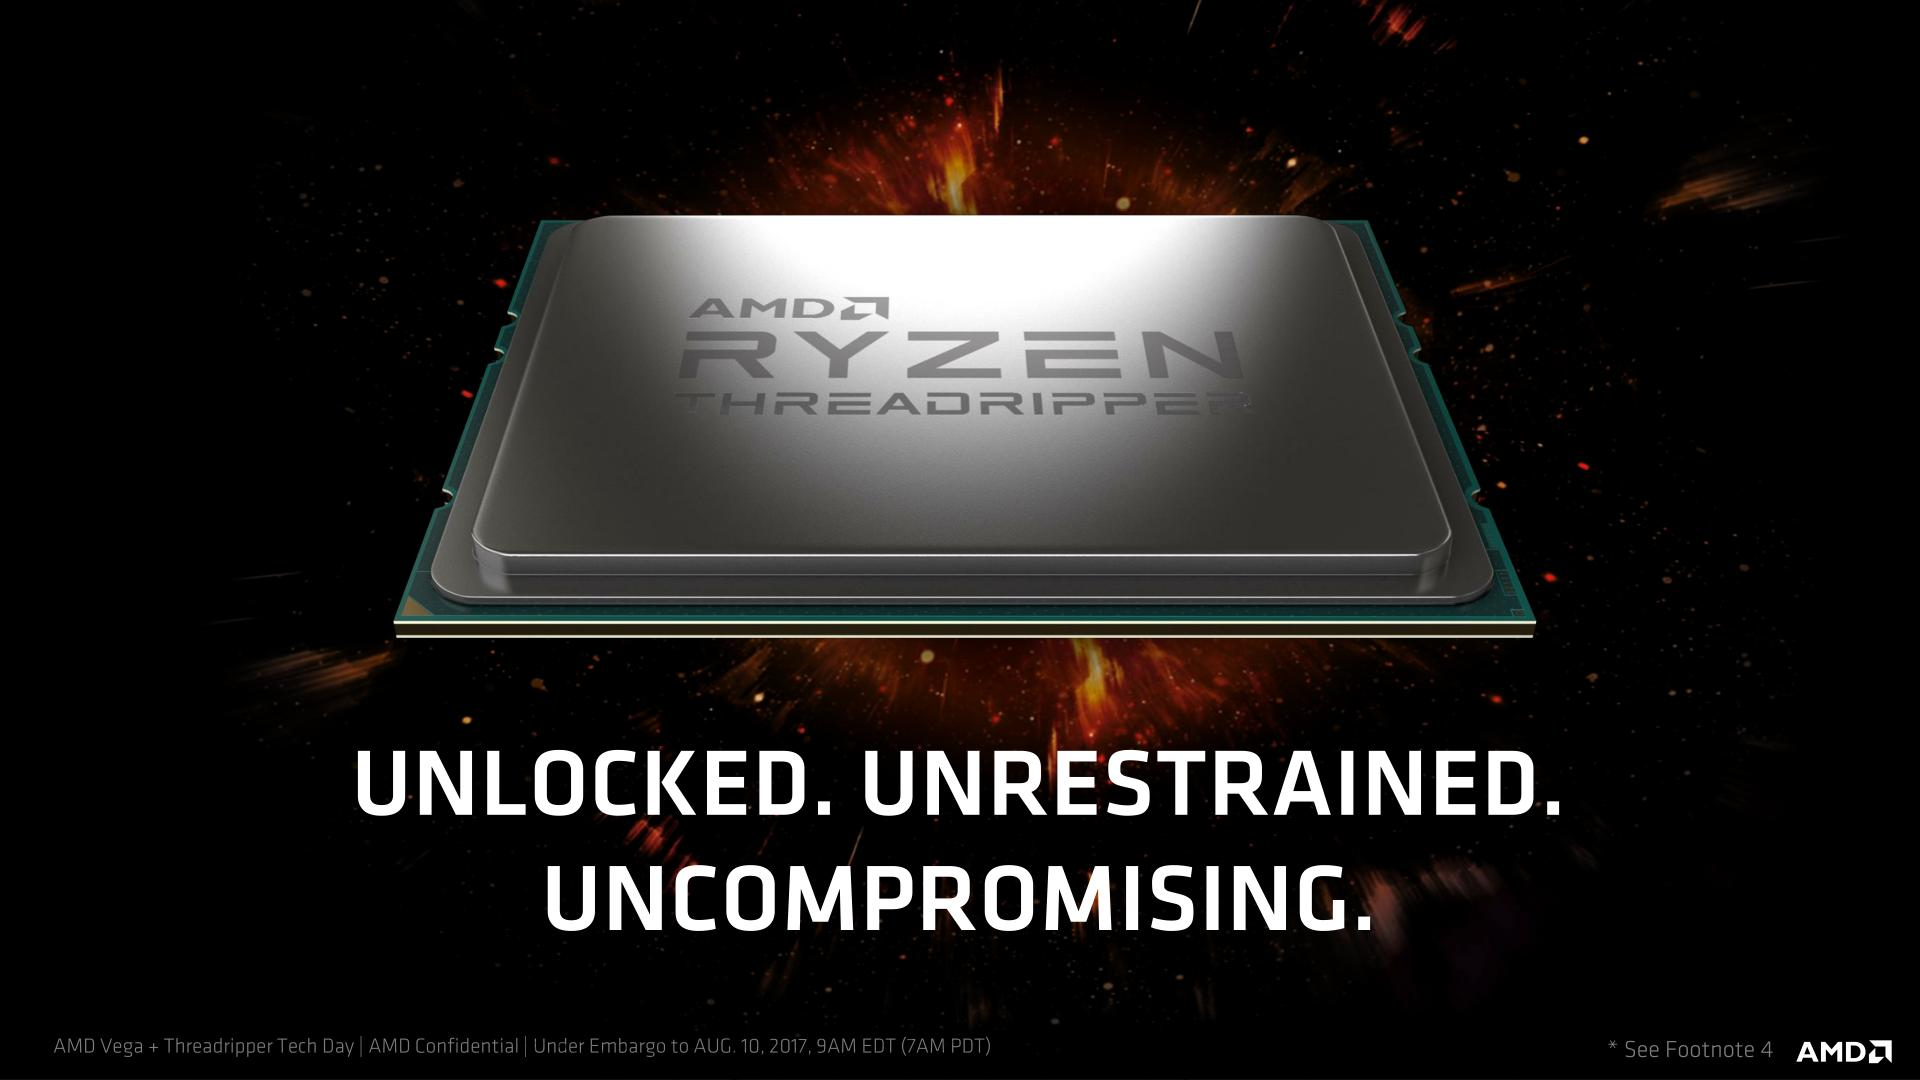 Amd S 16 Core Threadripper 1950x Gets Massive 120 Price Drop To 879 On Amazon